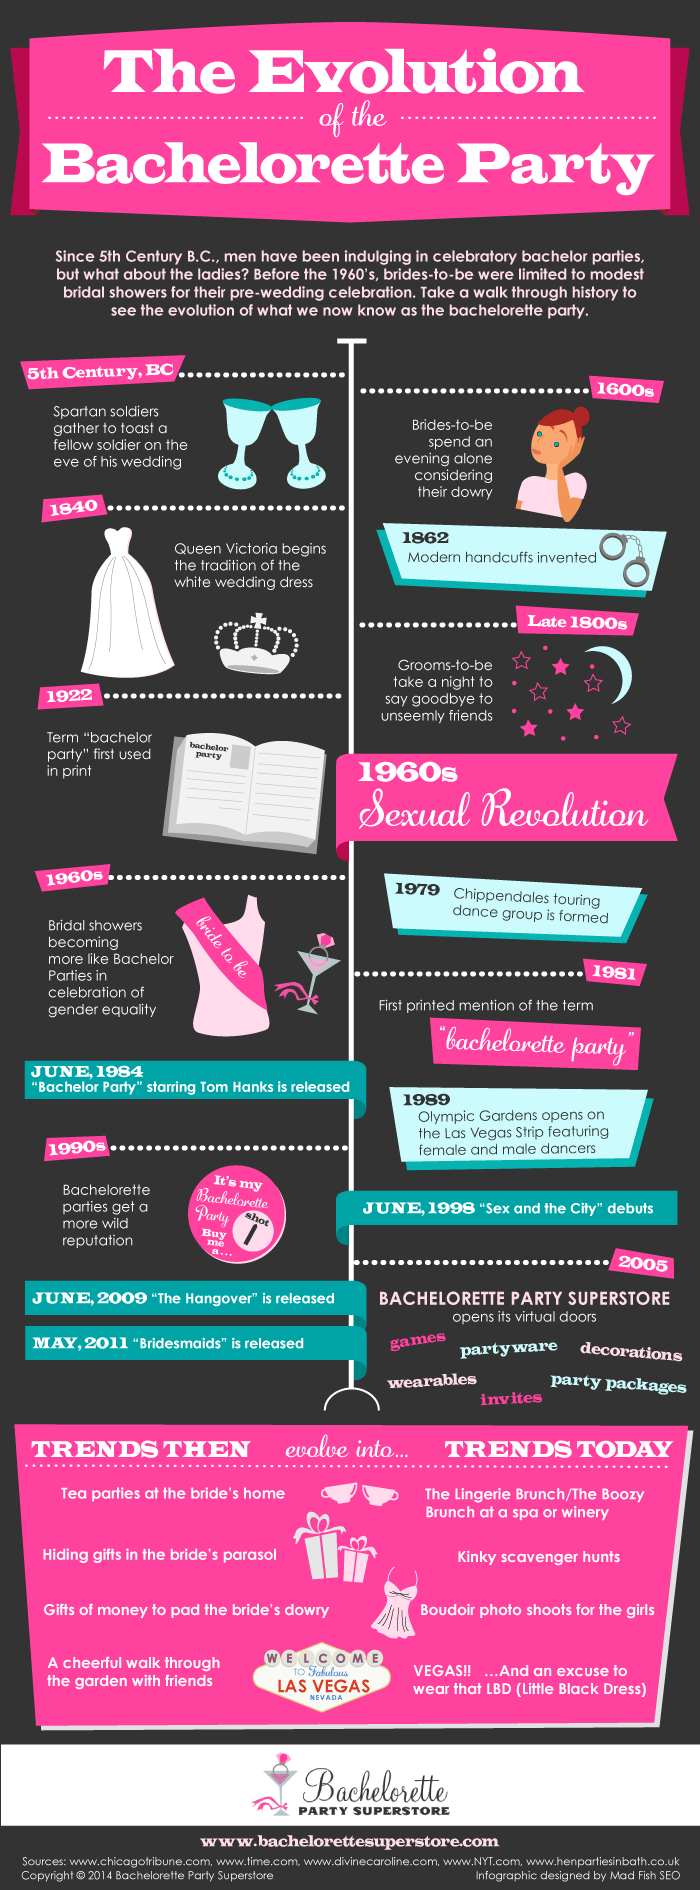 The Evolution of the Bachelorette Party